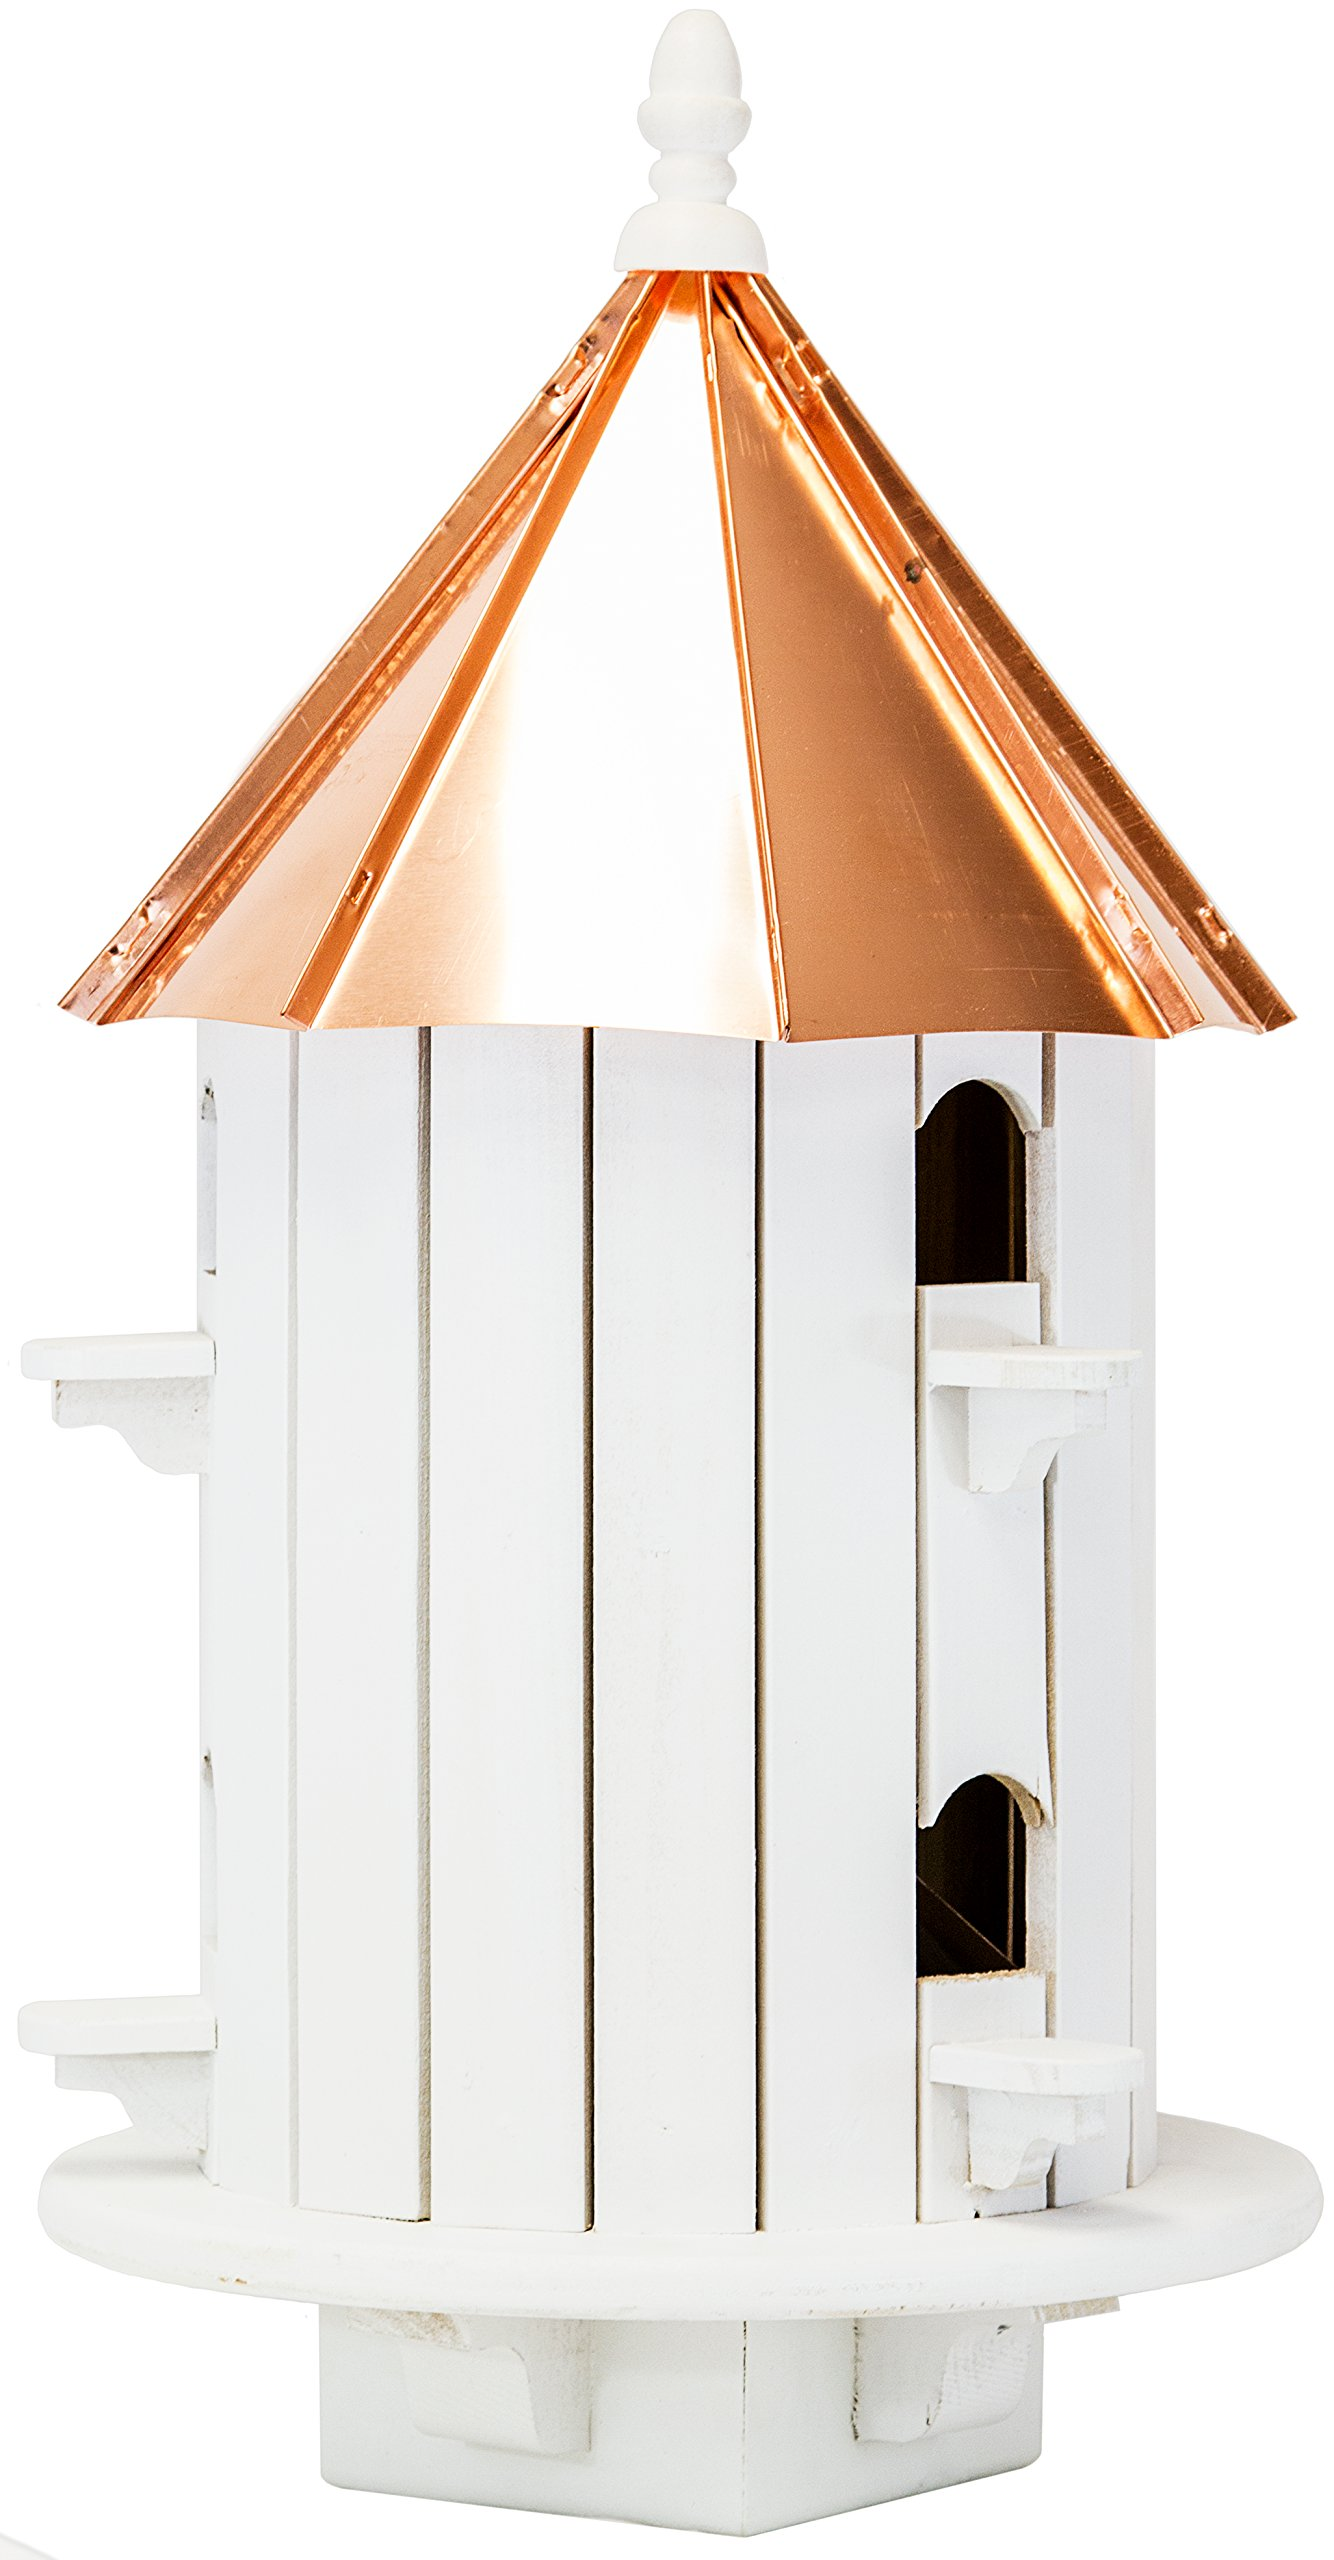 Amish 24ʺ Copper Top 6-Hole Birdhouse, Handcrafted in the USA